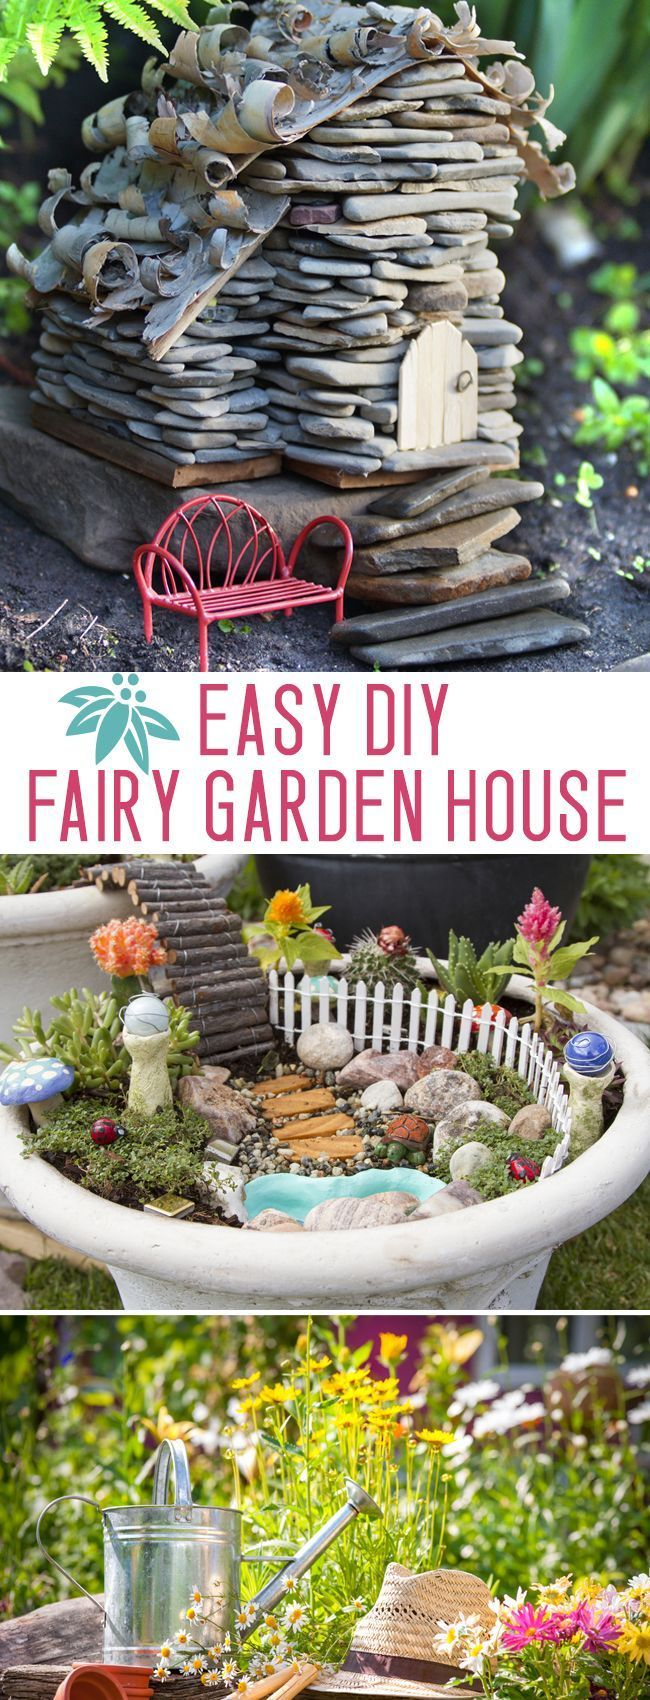 Make an adorable stone fairytale home   this simple DIY is fun for kids OR is part of Simple Fairy garden - Make an adorable stone fairyhouse  this simple DIY is fun for kids OR adults! Gardens Source by t